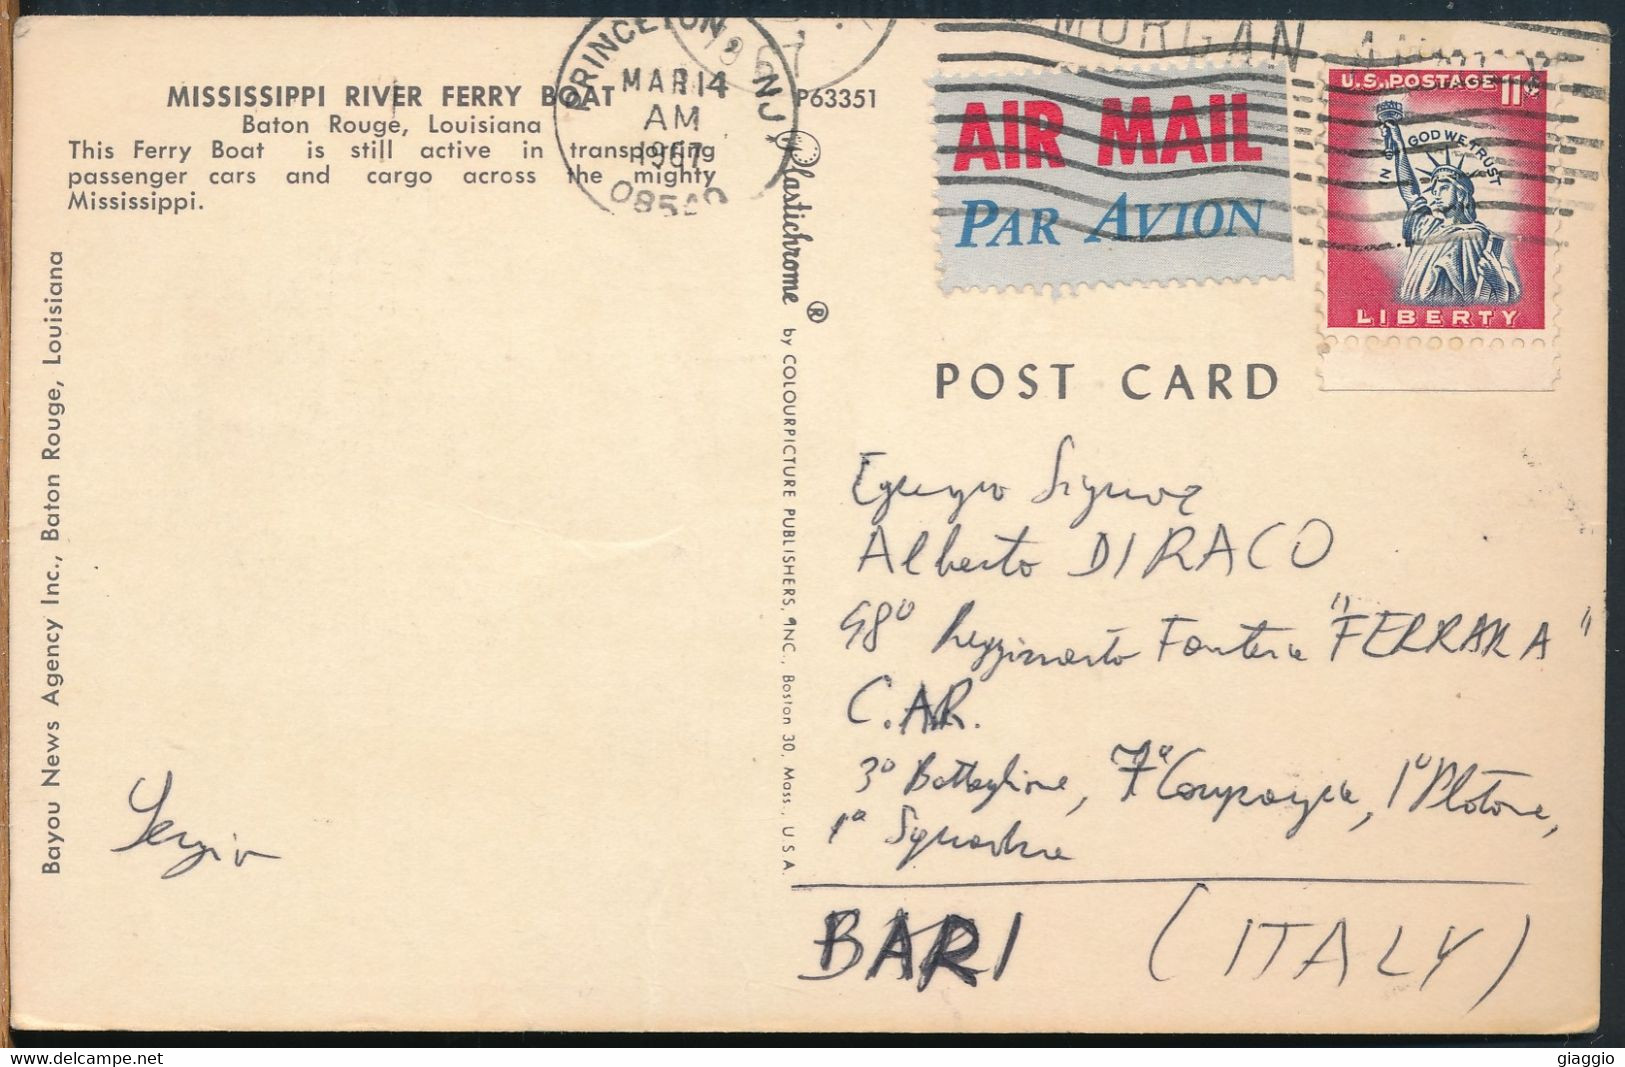 °°° 25313 - USA - LA - BATON ROUGE - MISSISSIPPI RIVER FERRY BOAT - 1967 With Stamps °°° - Baton Rouge